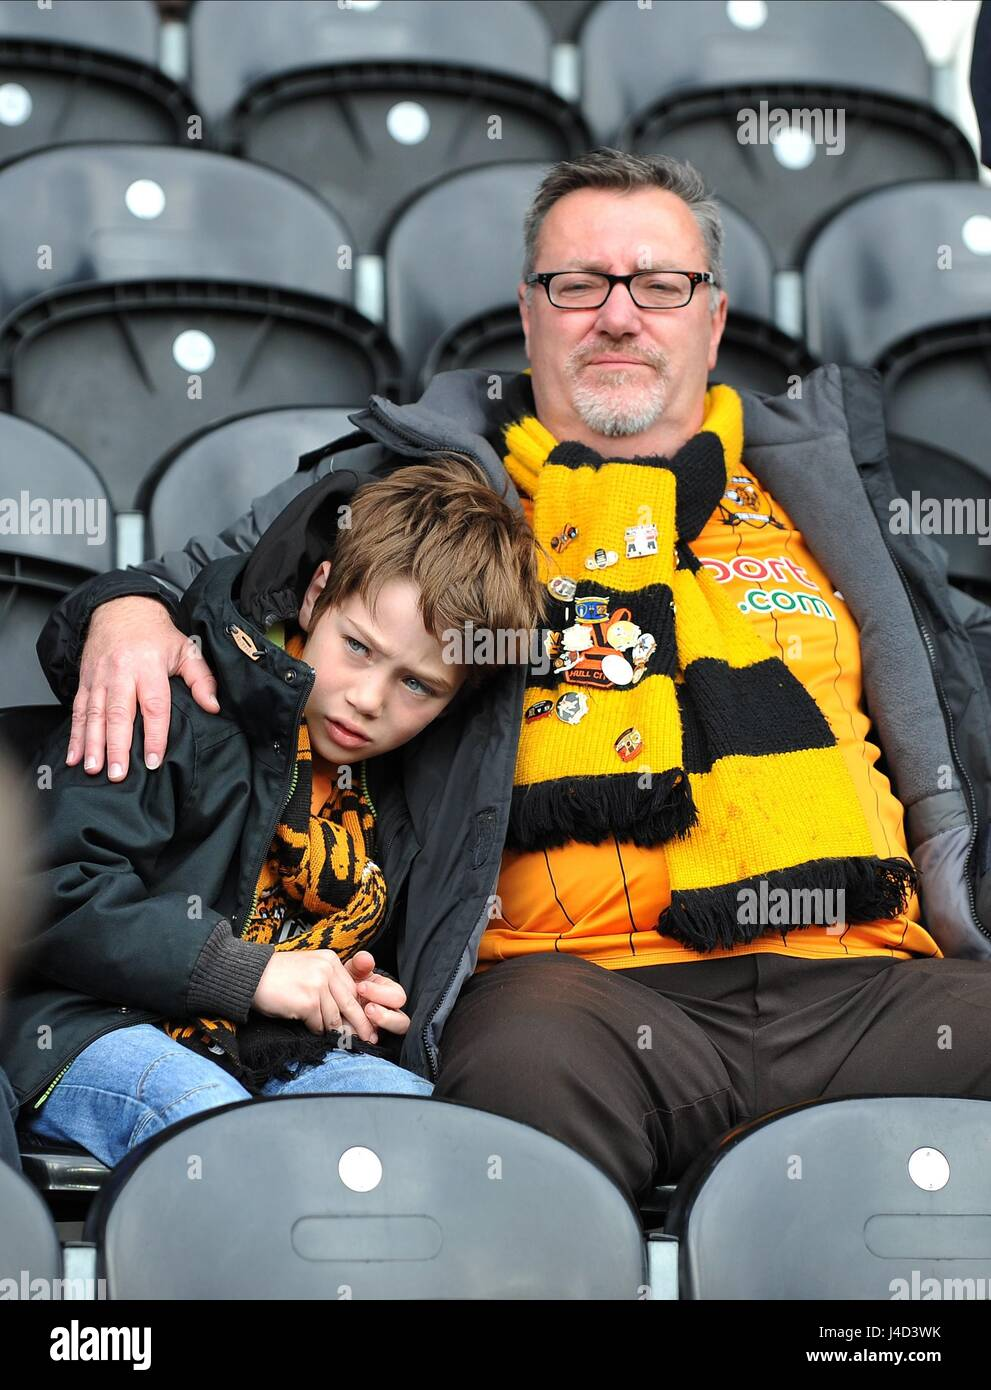 A TEARFUL YOUNG HULL FAN HULL CITY FC V BURNLEY FC HULL CITY FC V BURNLEY FC KC STADIUM HULL ENGLAND 09 May 2015 - Stock Image